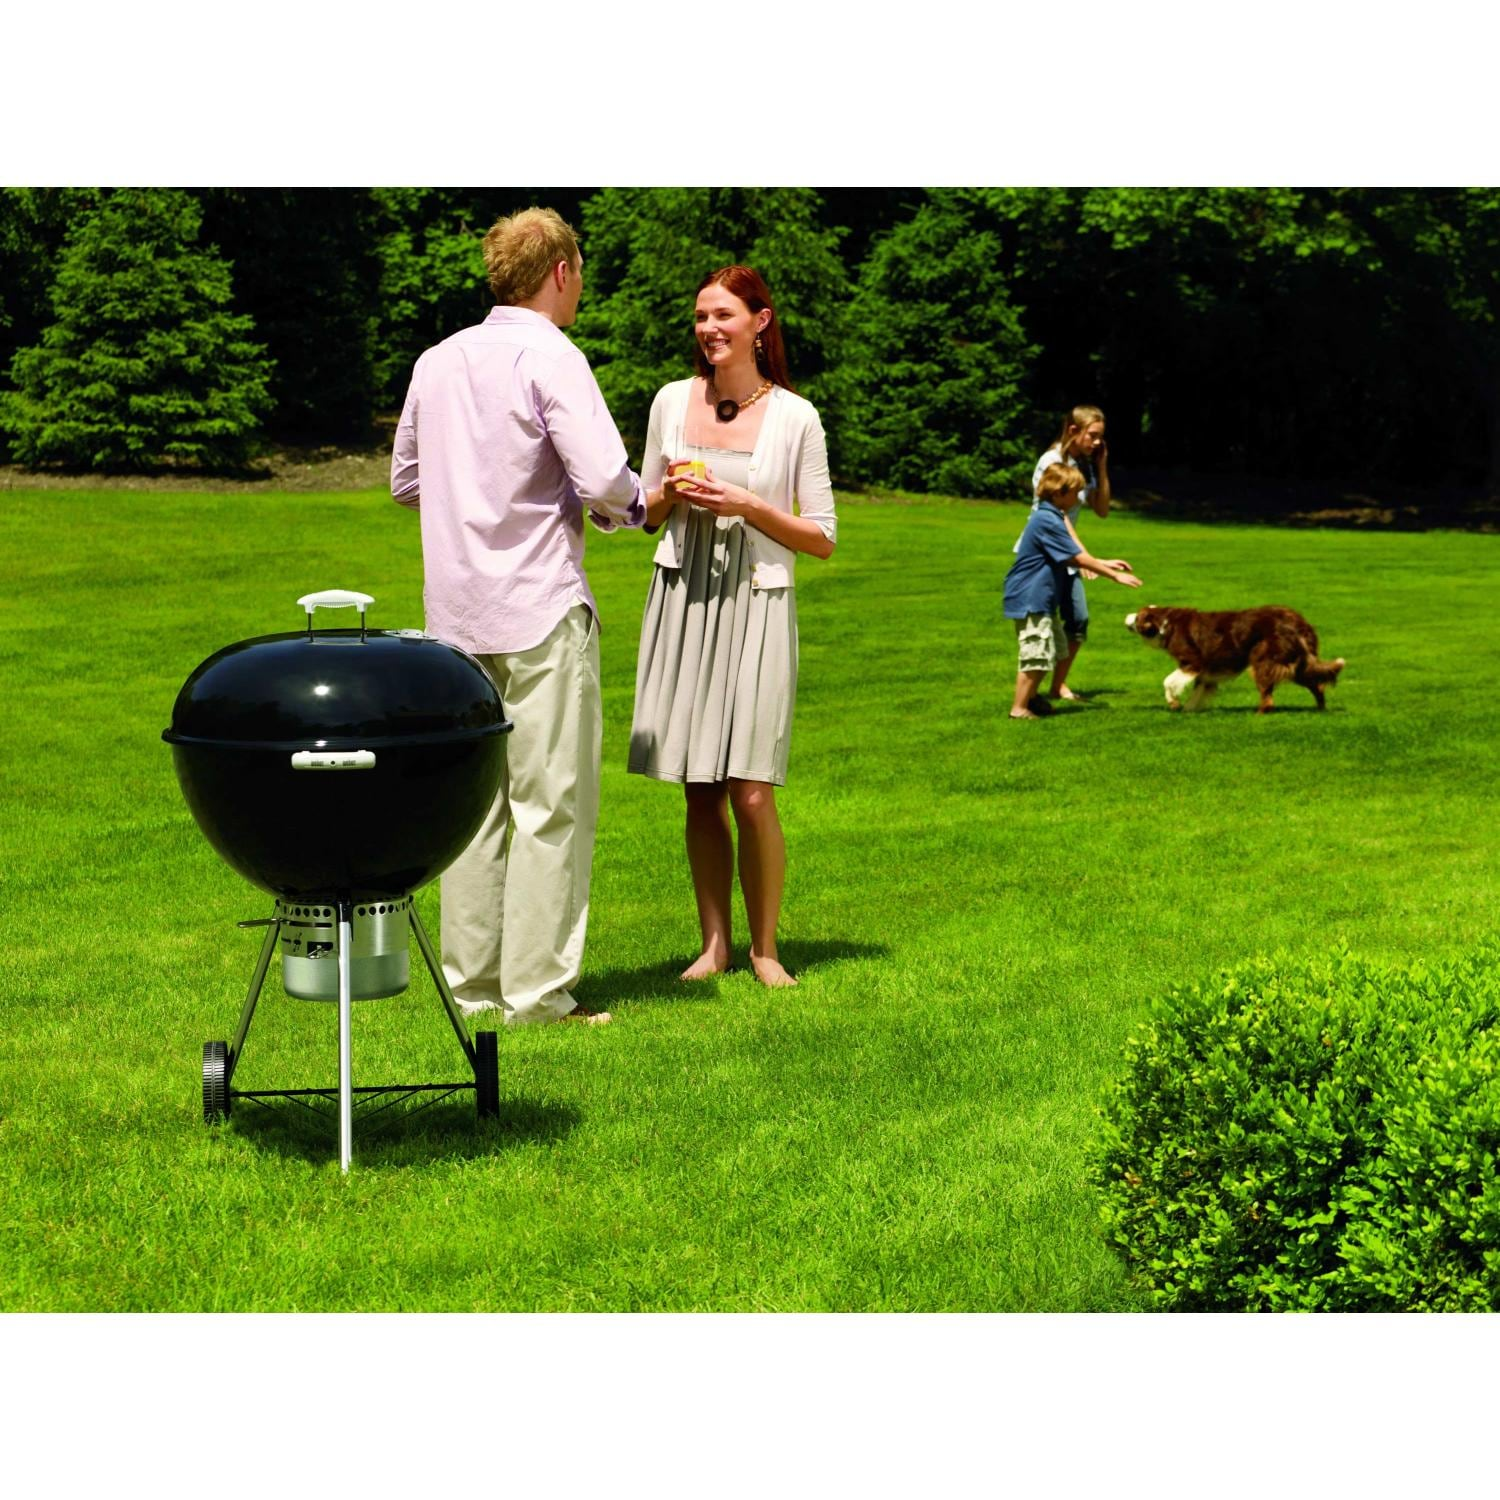 Weber Grill One Touch Weber One Touch Gold 22 5 Inch Charcoal Kettle Grill Black